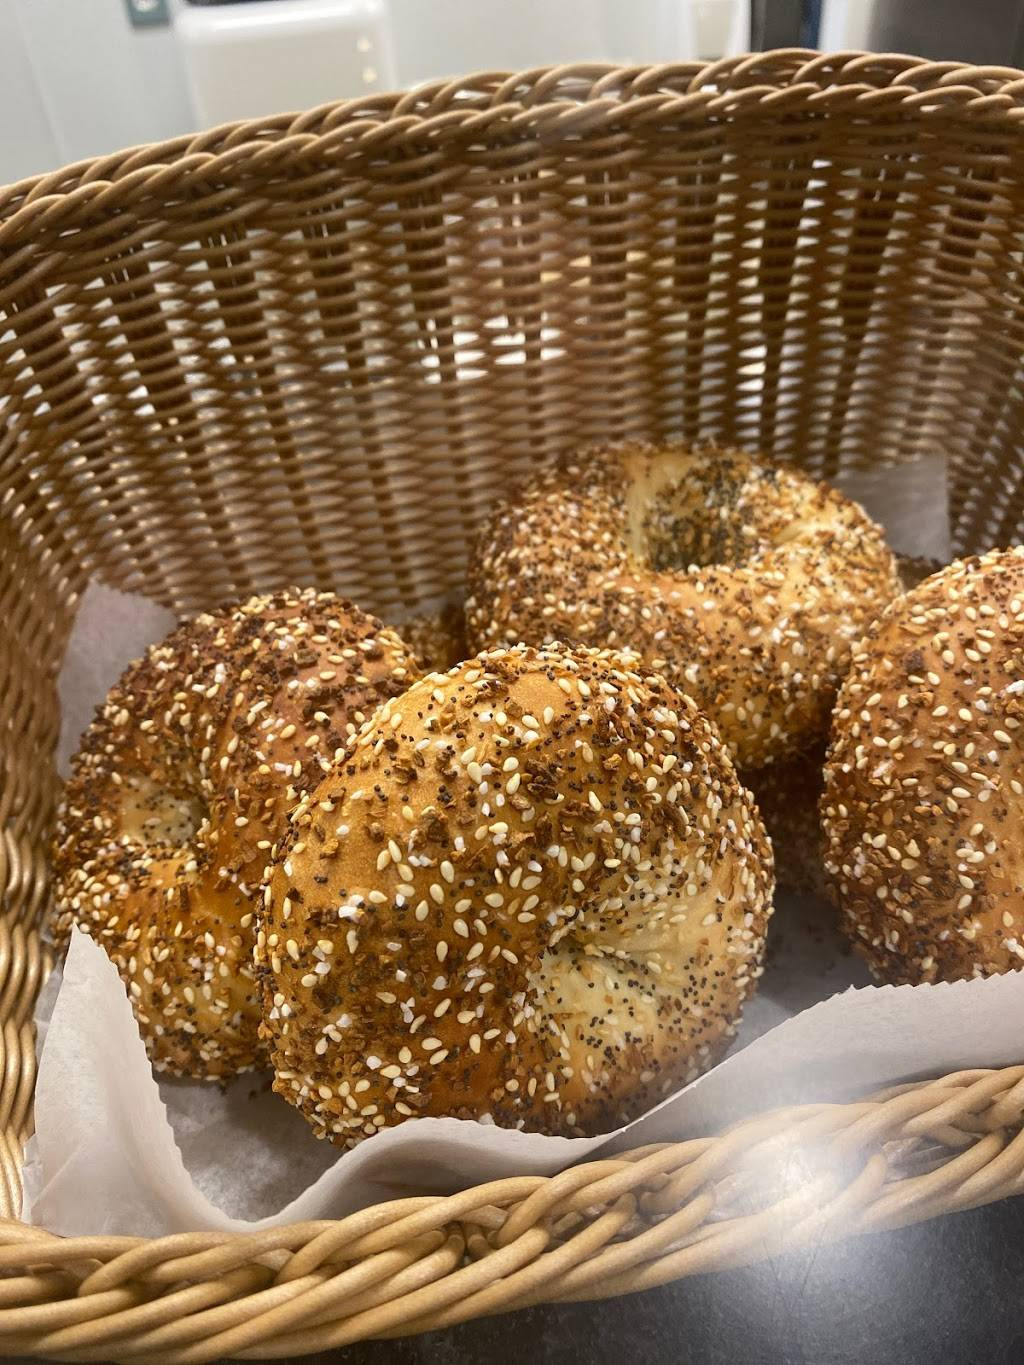 59 Causeway Drive Bagels and Coffee | restaurant | 59 Causeway Dr, Ocean Isle Beach, NC 28469, USA | 9109338802 OR +1 910-933-8802